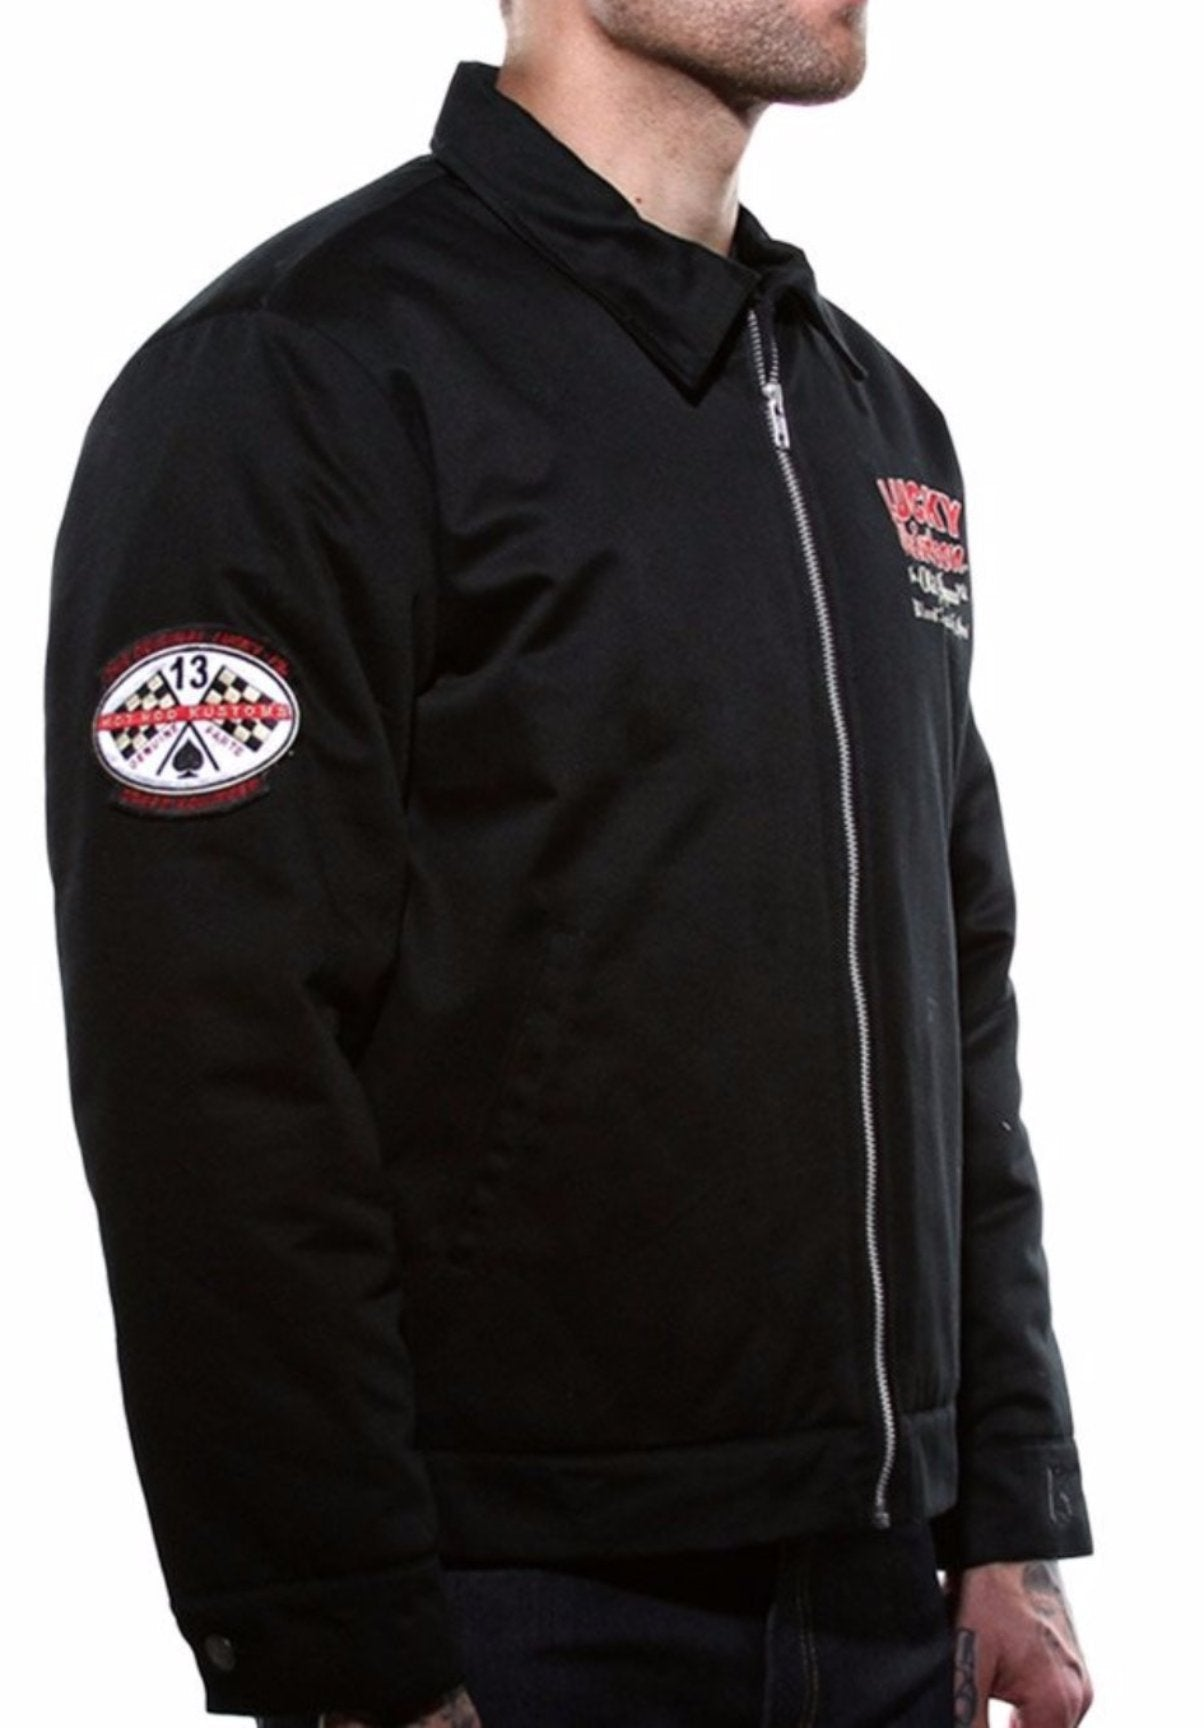 The OLD SPEED Jacket - FREE SHIPPING!